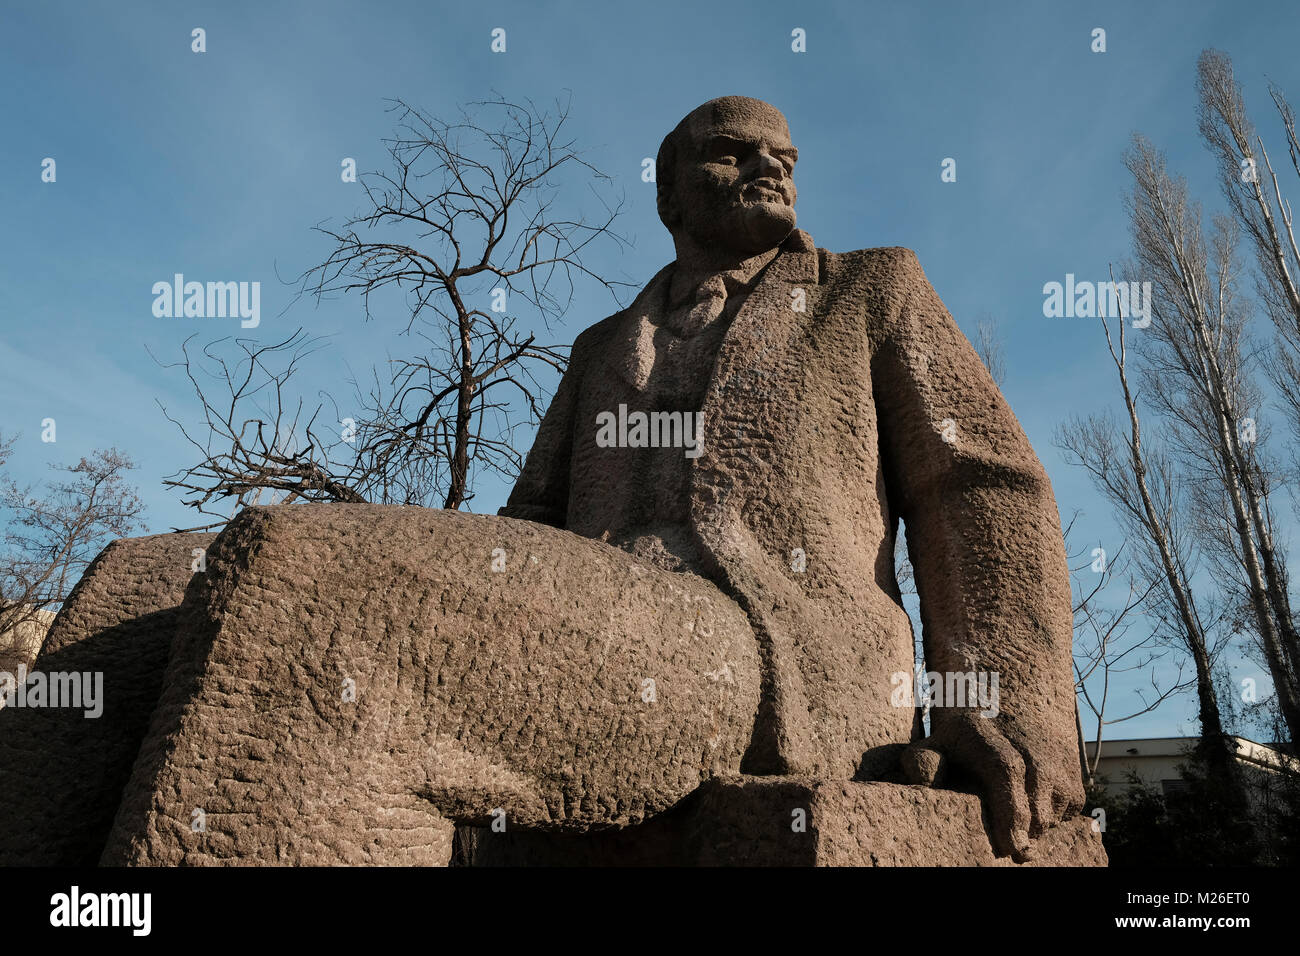 A Soviet-era sculpted figure of Vladimir Lenin in front of the Museum of Socialist Art which covers the history - Stock Image